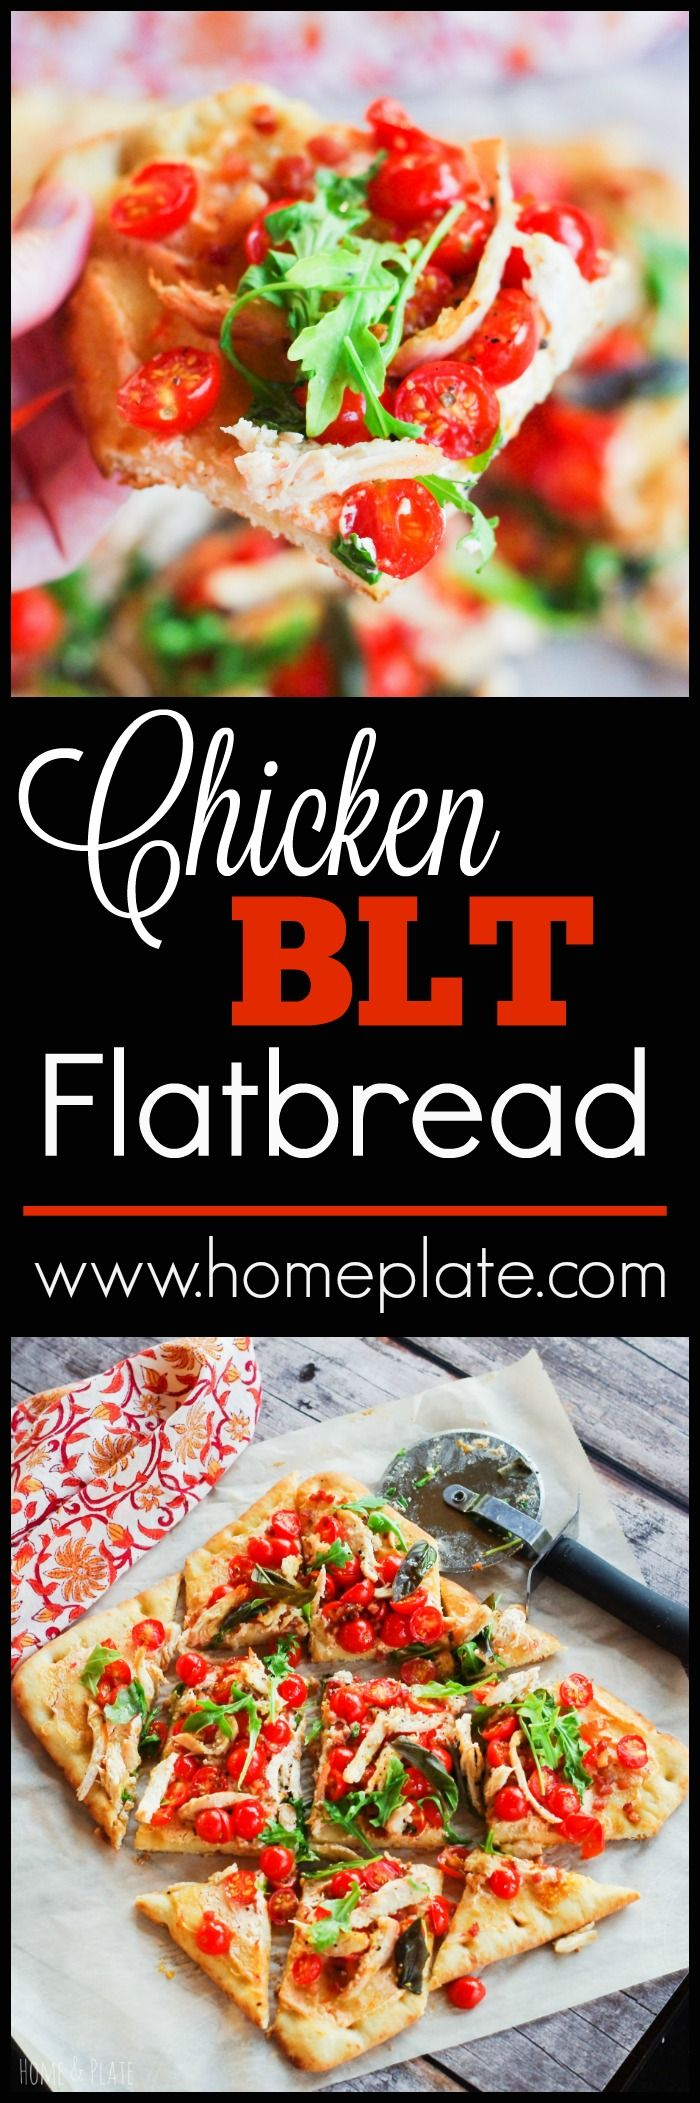 Chicken BLT Flatbread | www.homeplate.com | Enjoy summer's citrusy sweet cherry…